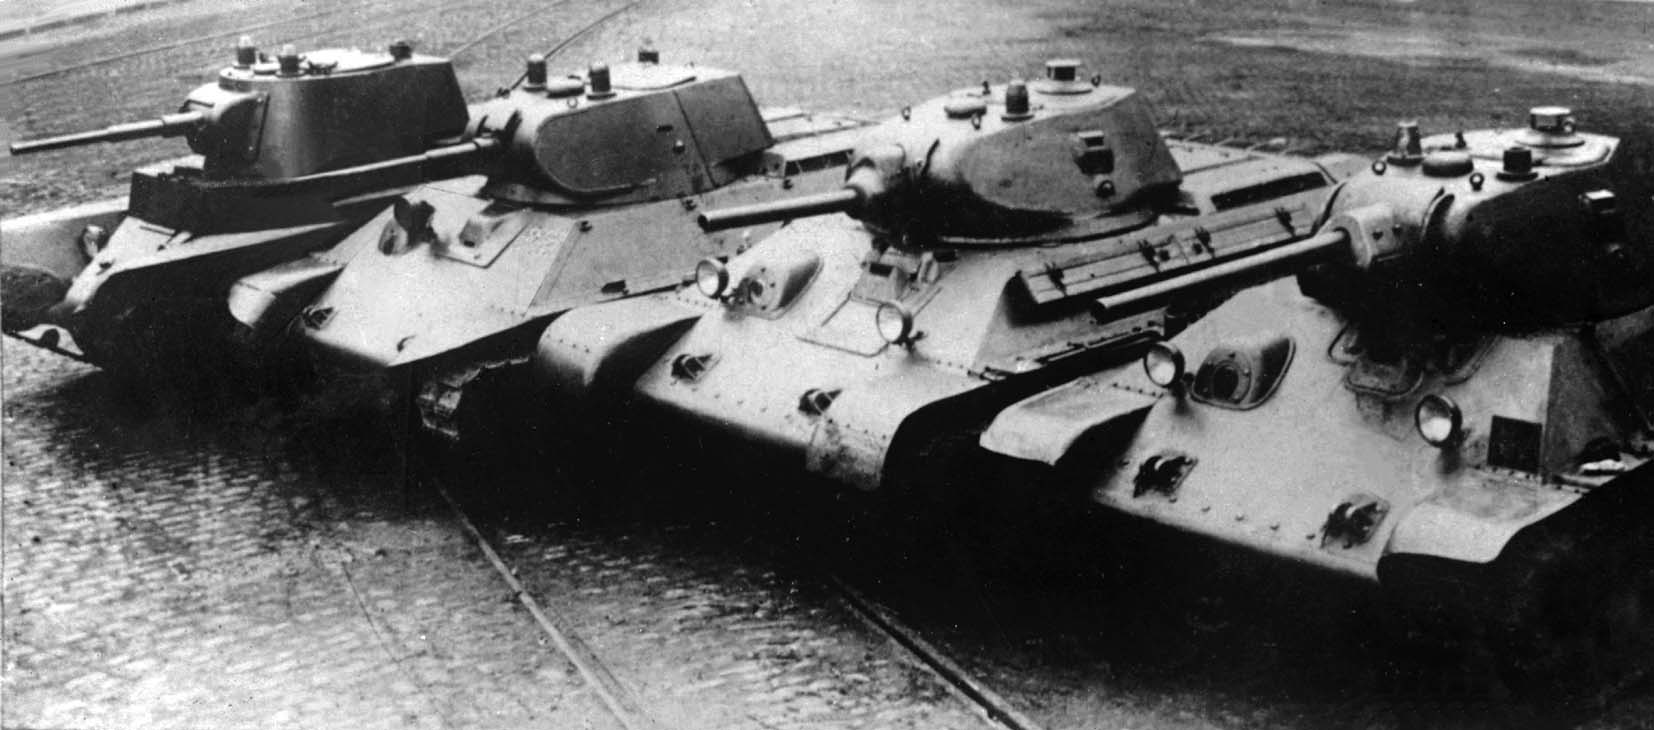 That Time Russia Lost 9,000 Tanks In 2 Months, And Other Military History Facts We Didn't Know